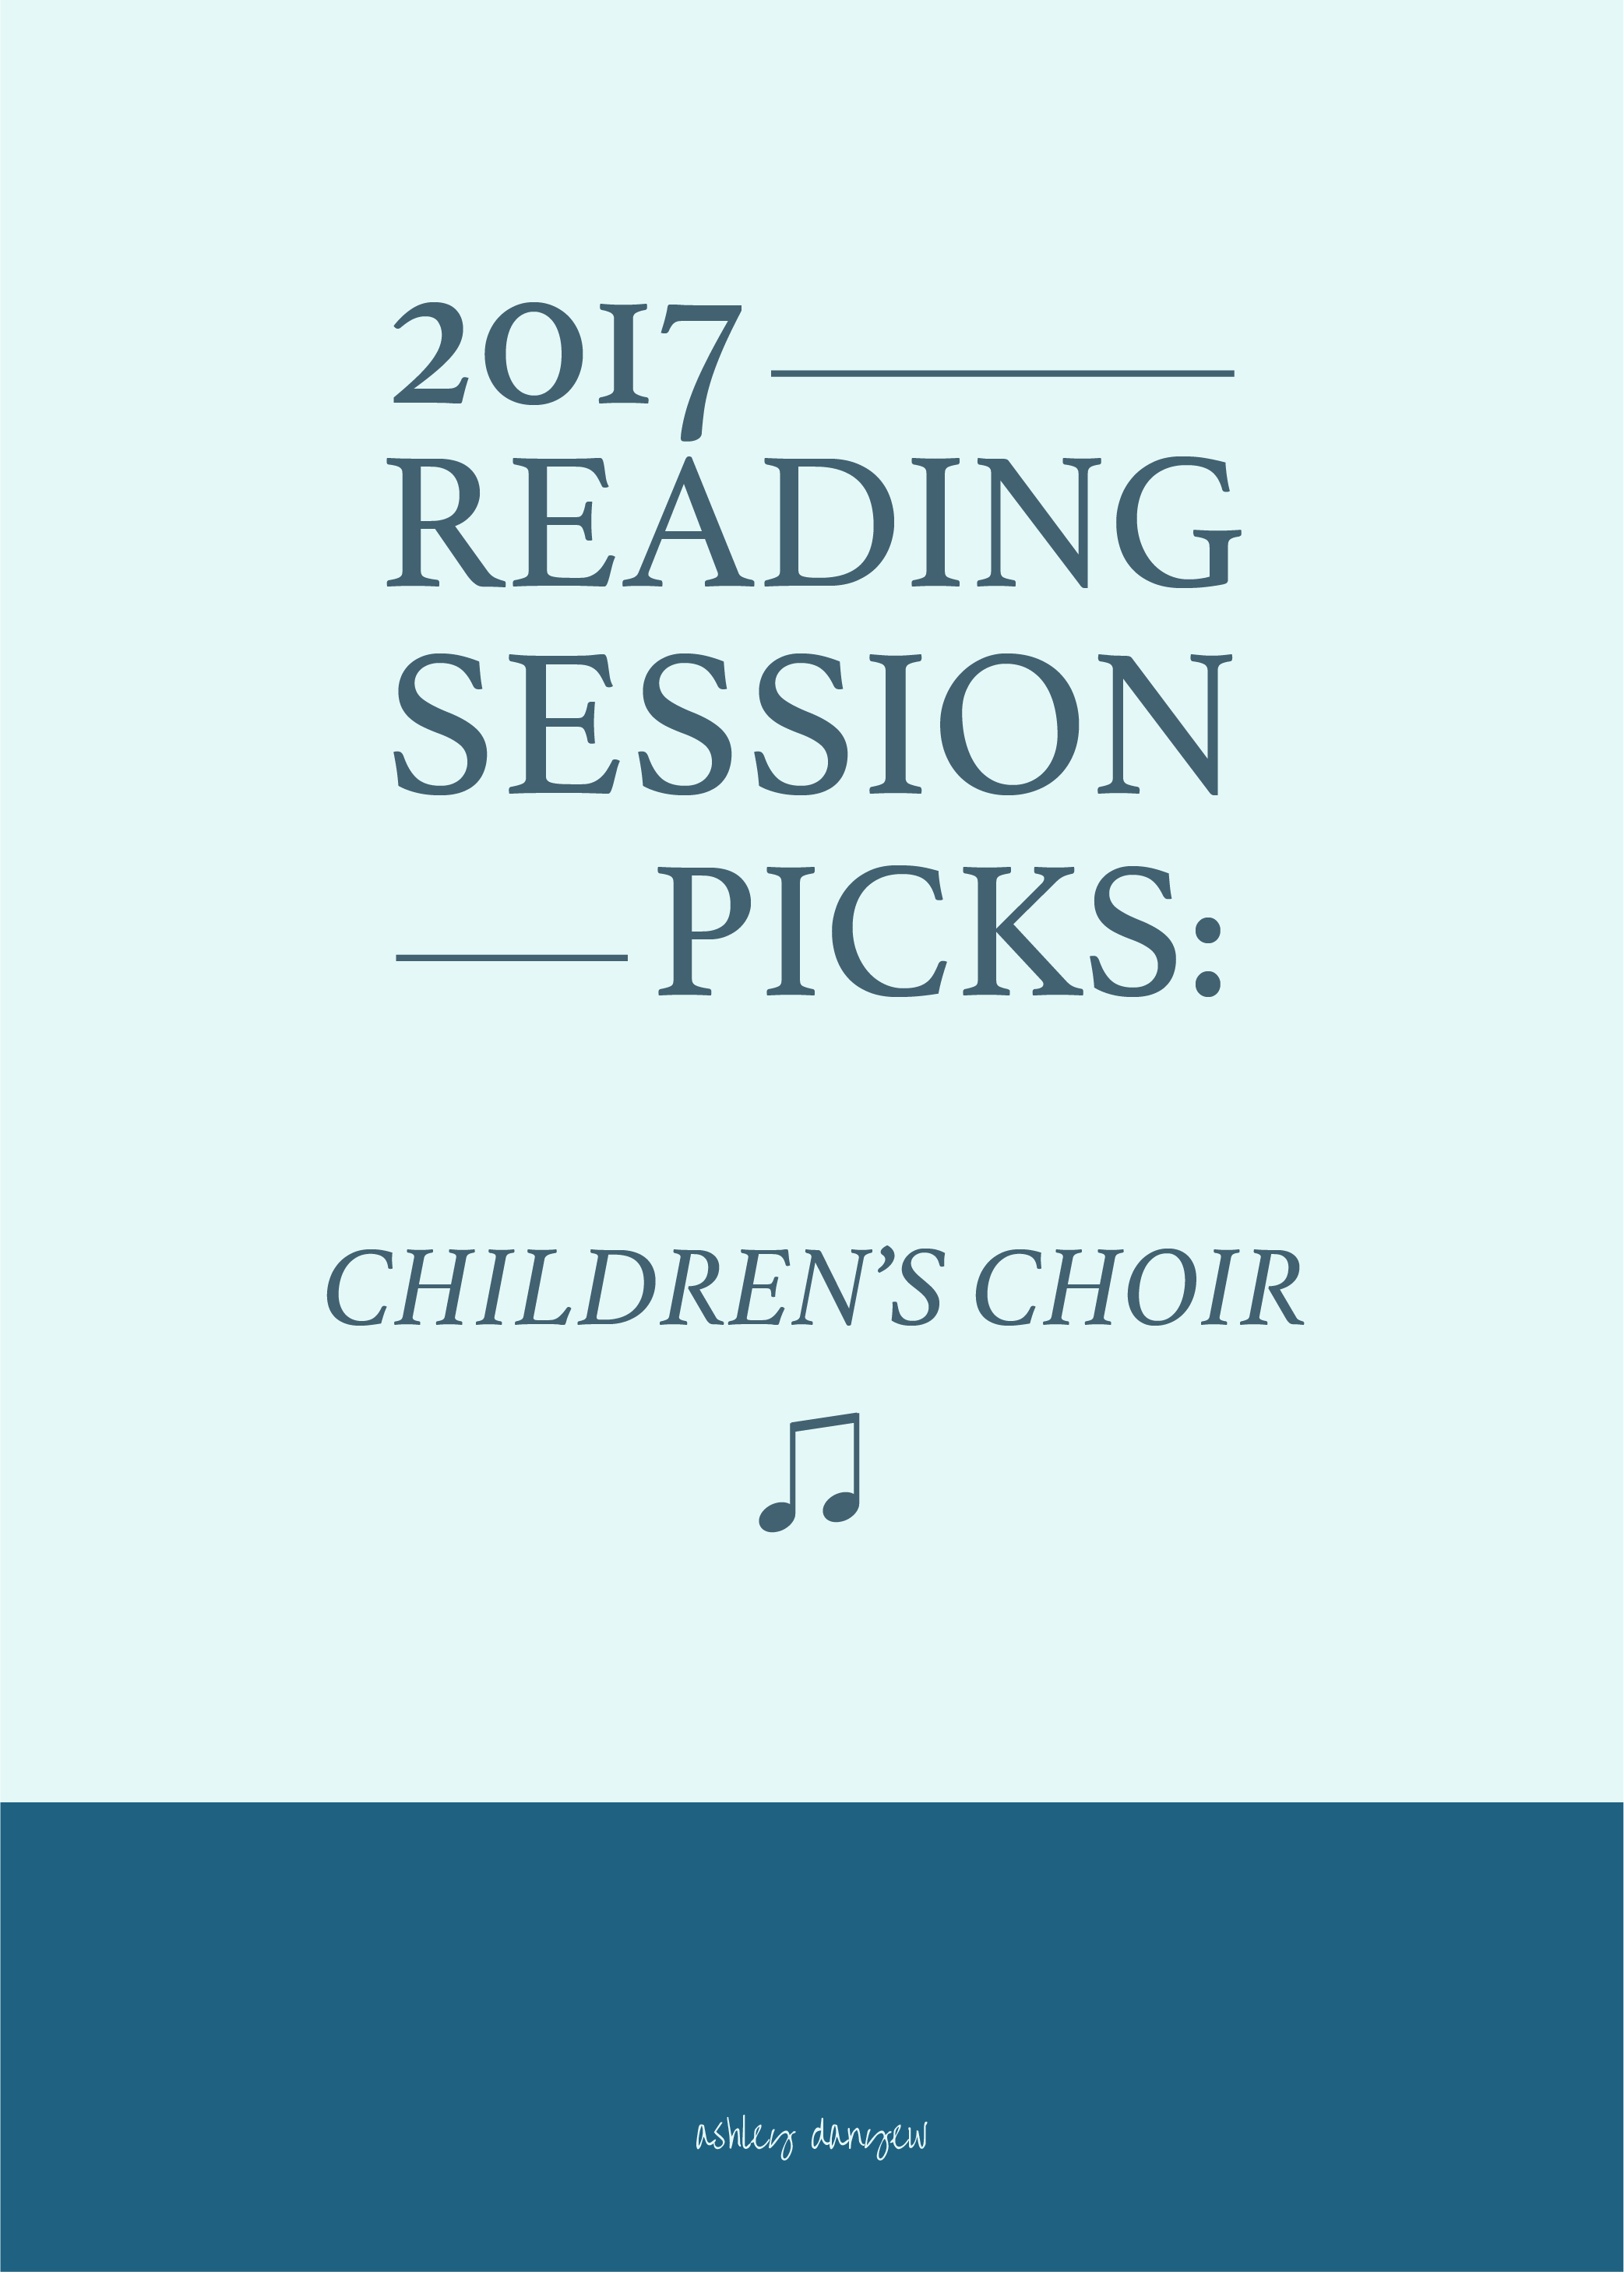 2017 Reading Session Picks - Children's Choir-06.png